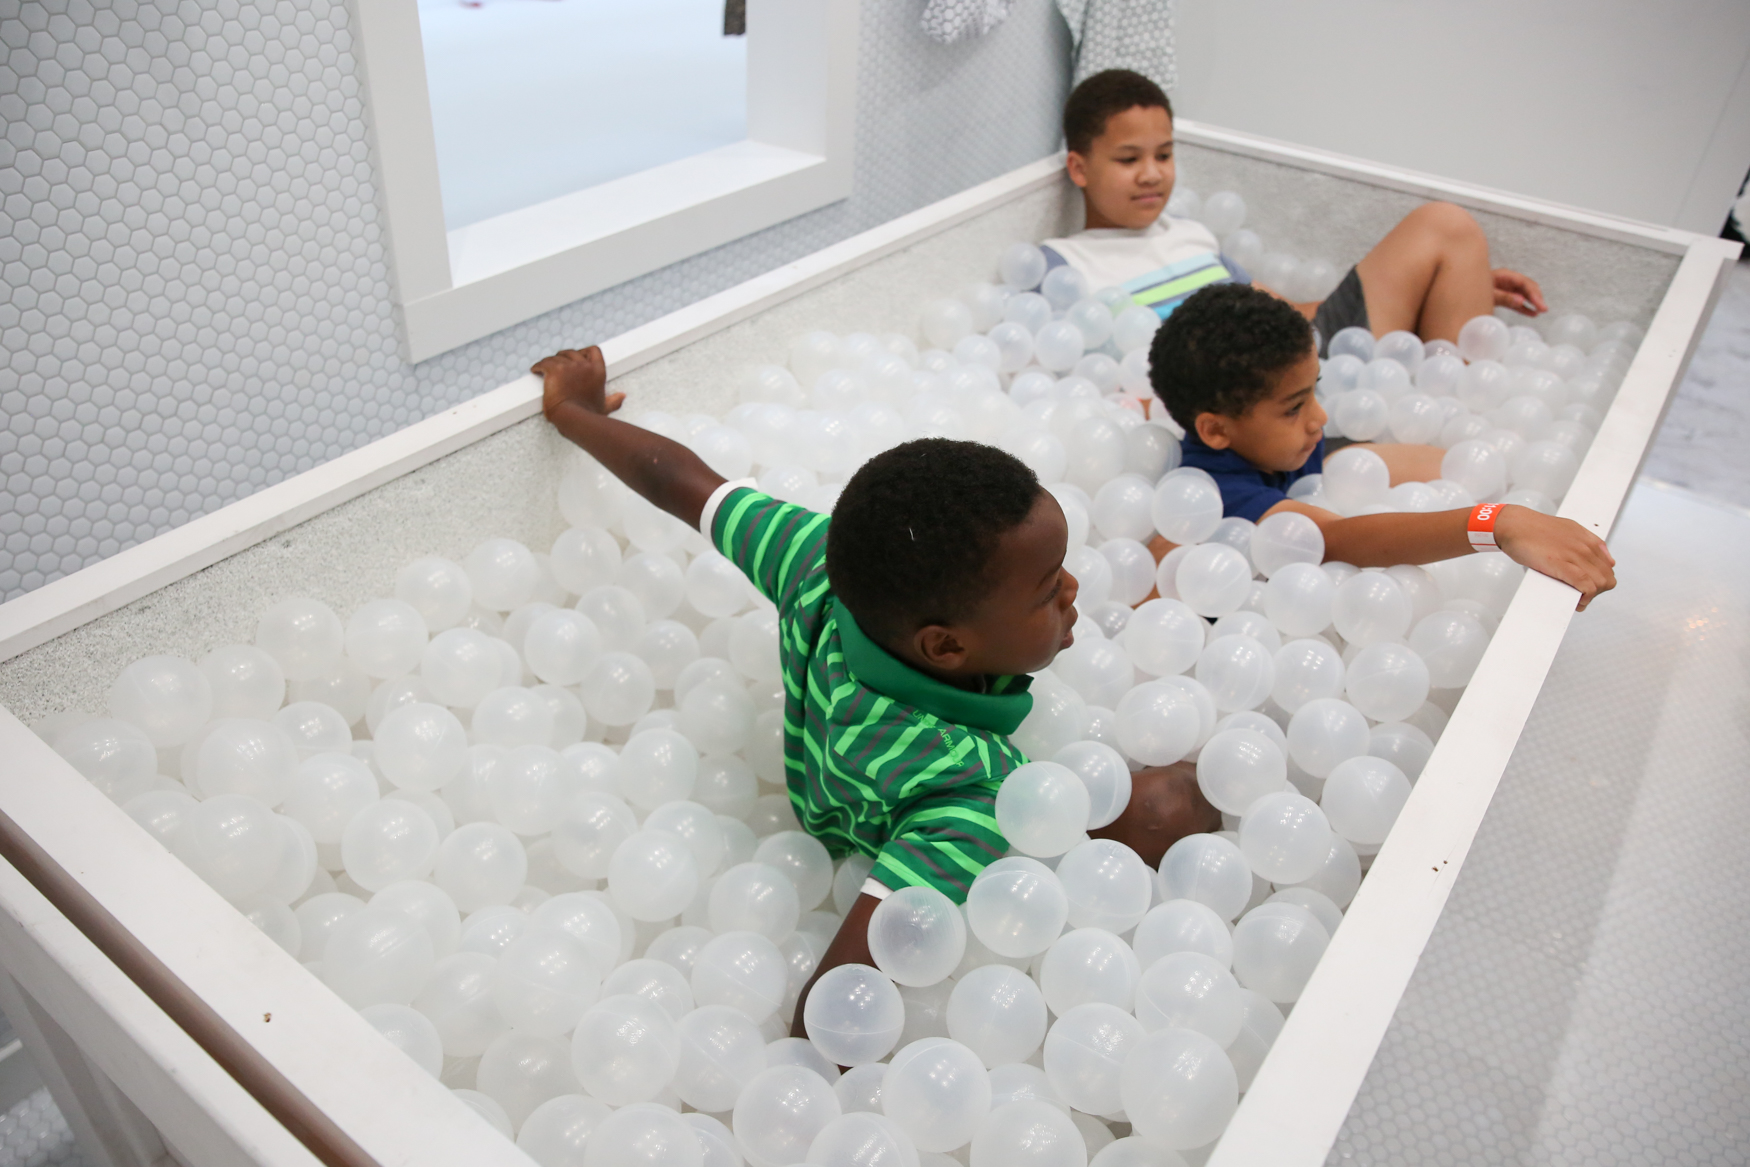 If your dream home includes a ping pong table, elaborate marble runs, a pool filled with toy balls and areas to jump and play, you're in luck. The National Building Museum's annual summer exhibit is back and better than ever with 'Fun House', a concept that opened on July 5. Adults and kids alike can run wild in the free-standing, all-white home in the middle of the National Building Museum. The exhibition,{ }designed by Snarkitecture, lets guests try out a variety of activities in the 'Fun House'. Nearly every room, including the faux backyard, contains impressive visual and textural elements that make the exhibit both fun and Instagram-friendly. Tickets for adults are $16. (Amanda Andrade-Rhoades/DC Refined)